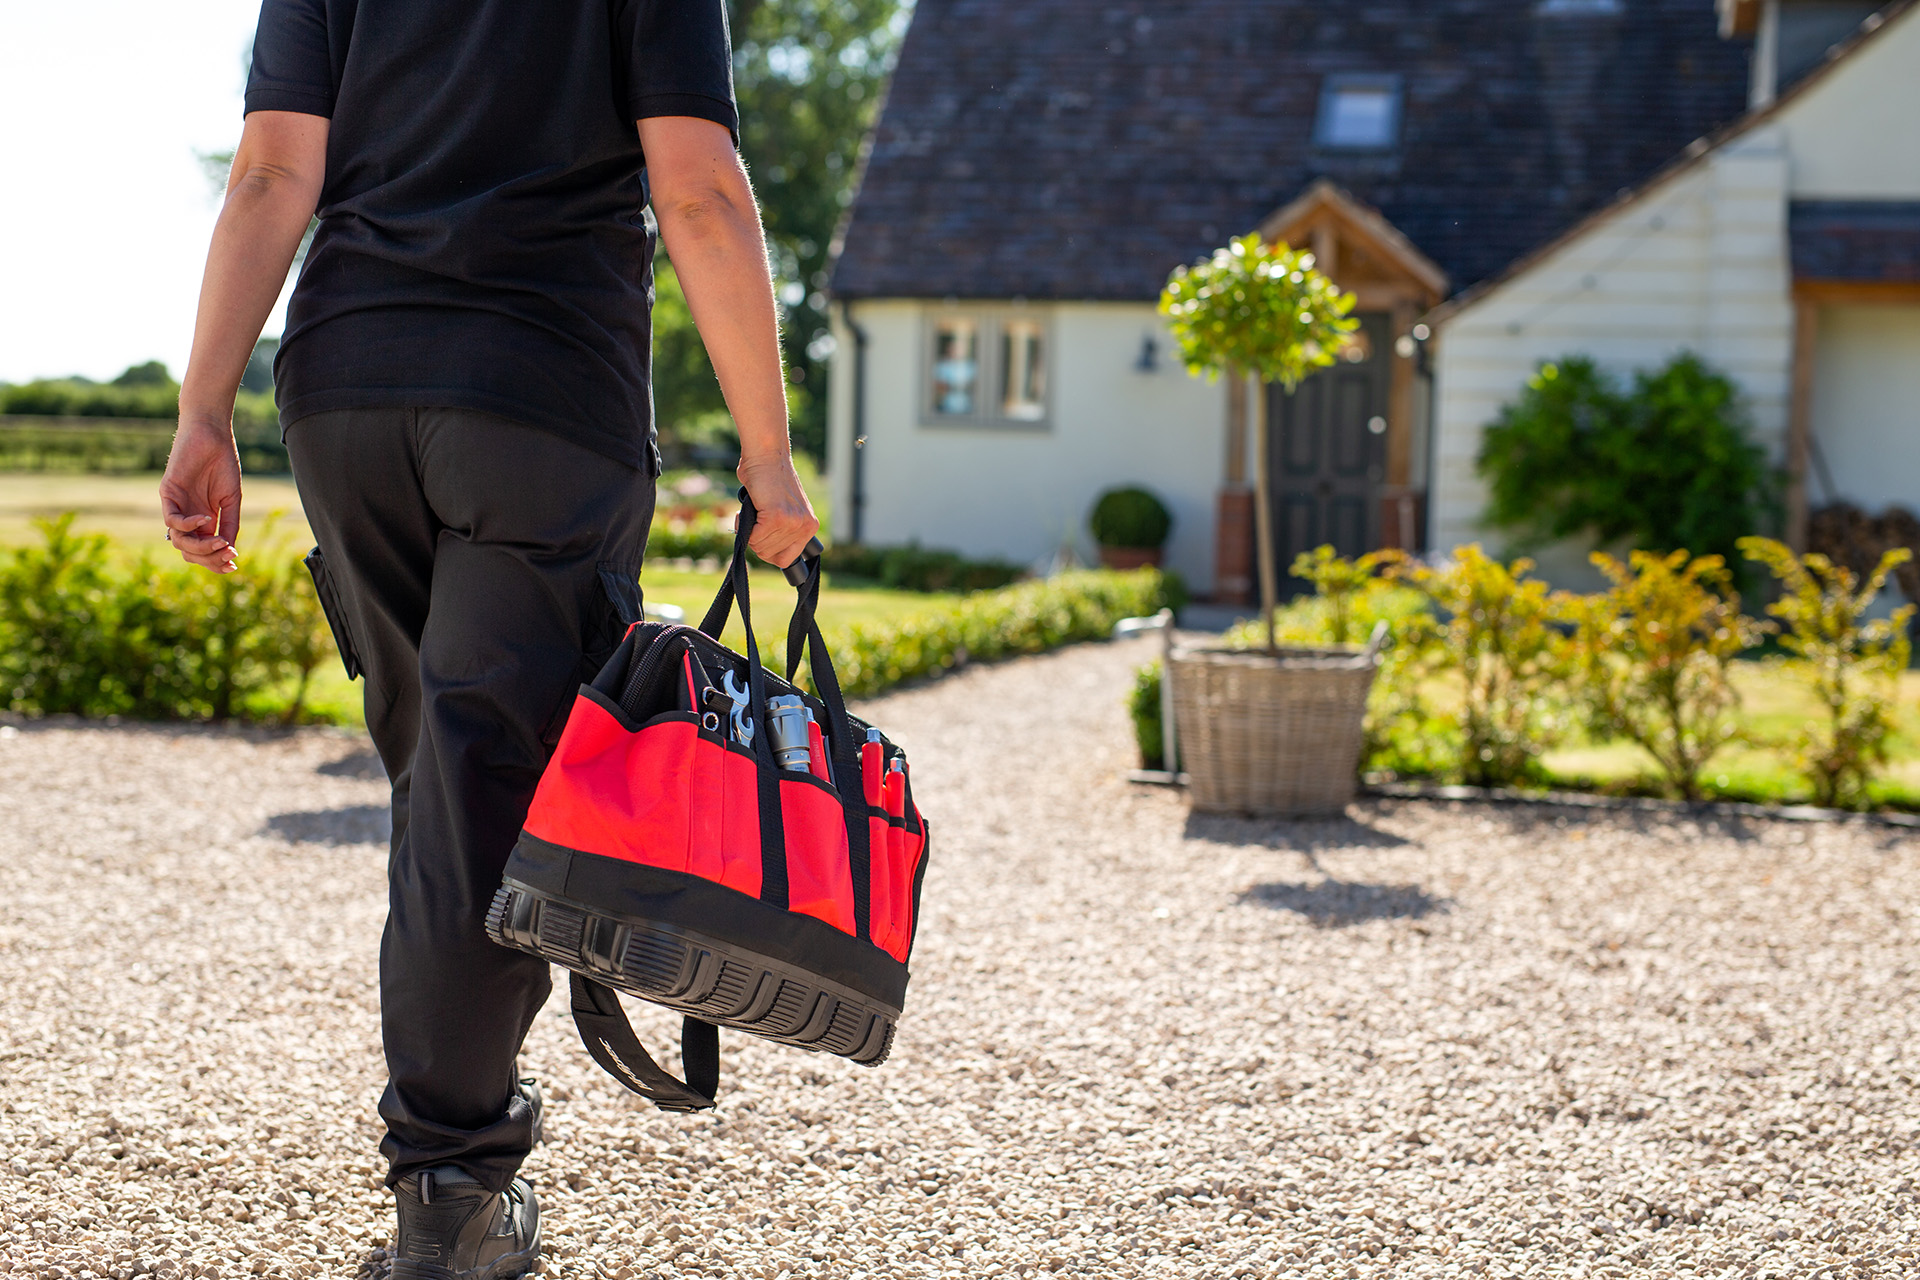 A Calor employee holding a tool bag and walking towards a Calor customer's house